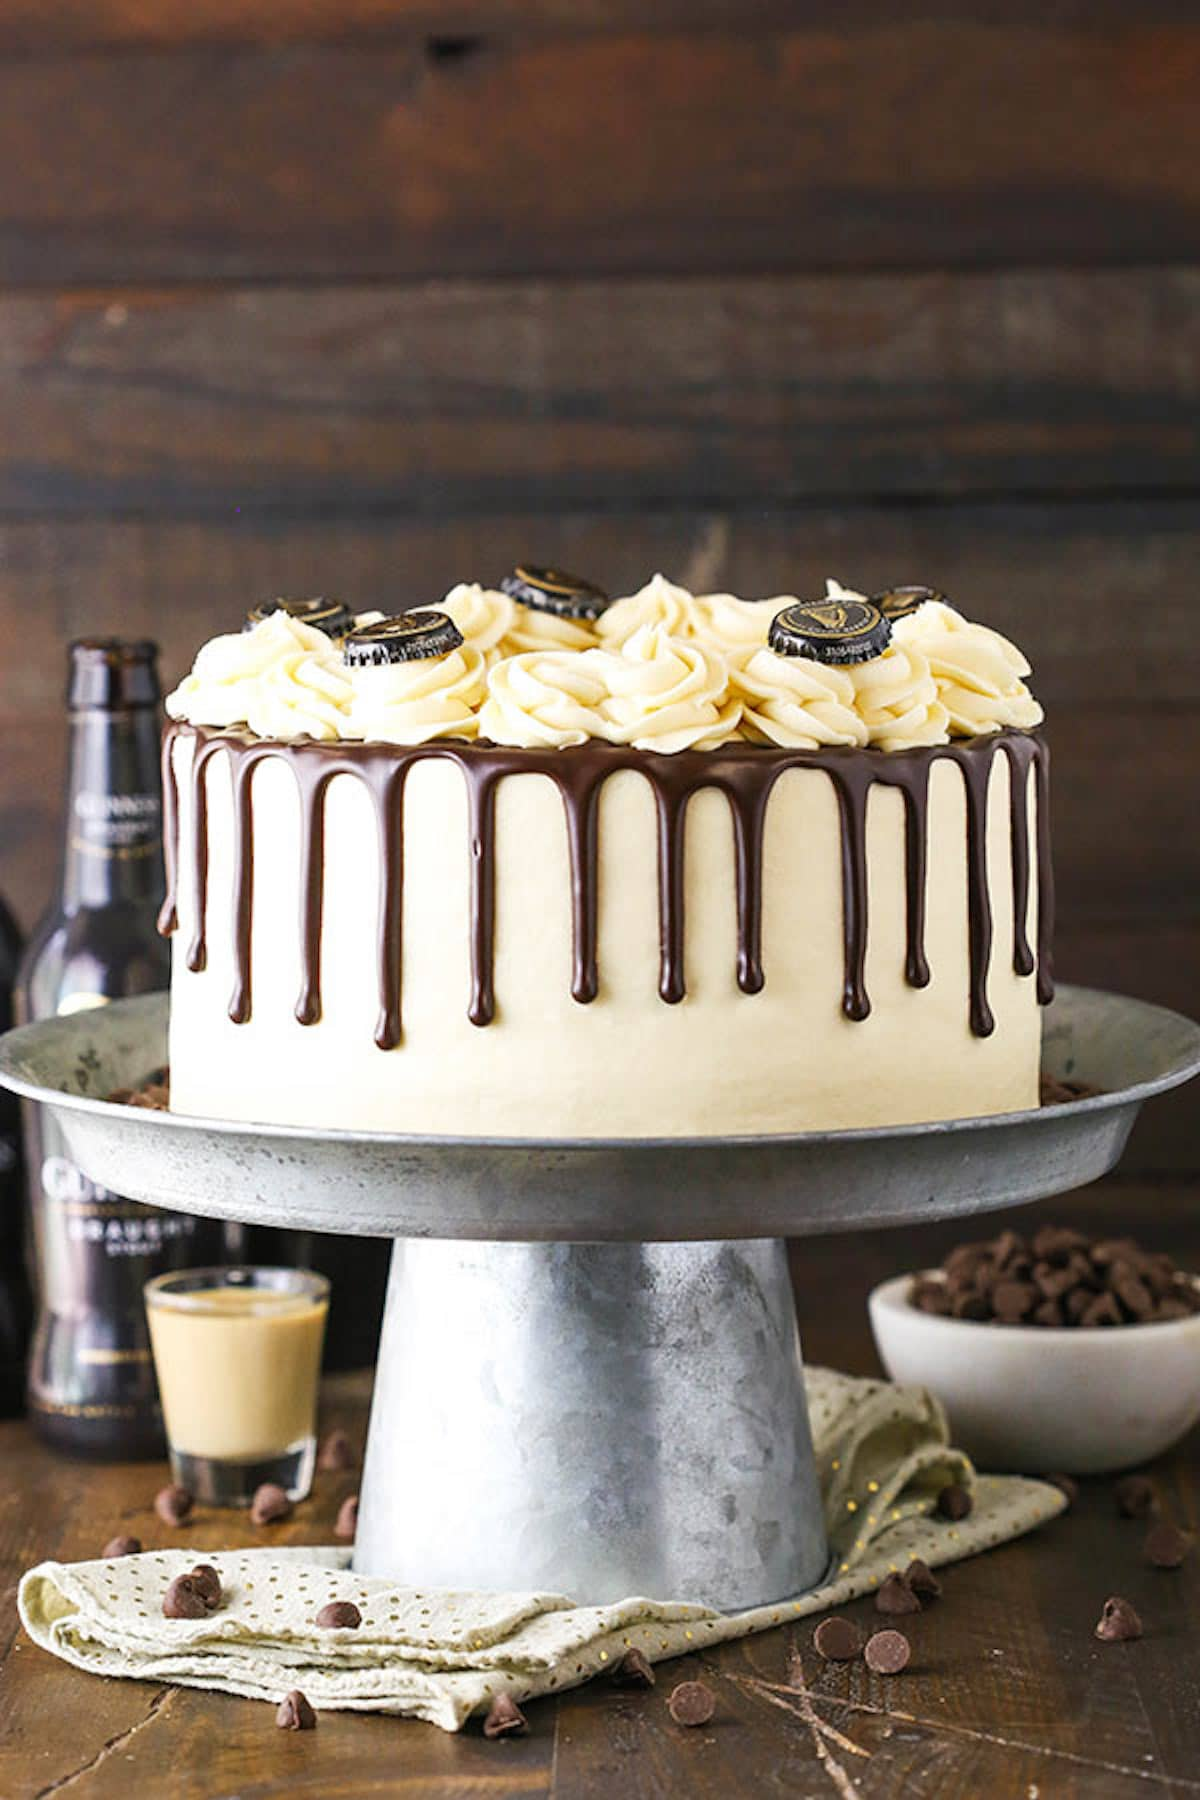 A Metal Cake Stand Holding a Decorated Guinness Chocolate Cake